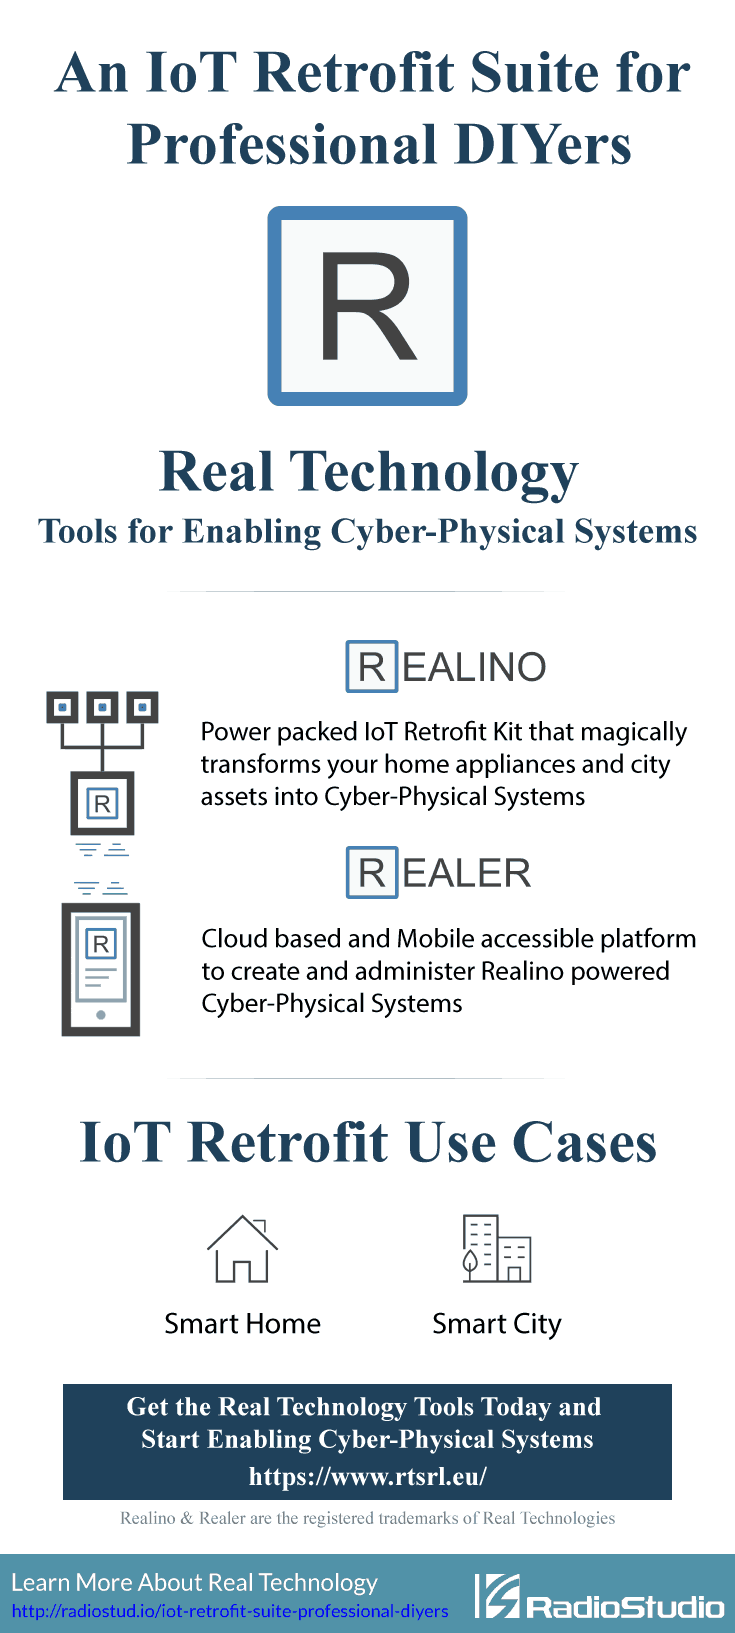 IoT Retrofit Tools for #smarthome & #smartcity. Be a professional DIYer with these IoT tools to enable cyber-physical systems from Real Technology. #IoT #smartcities #DIY